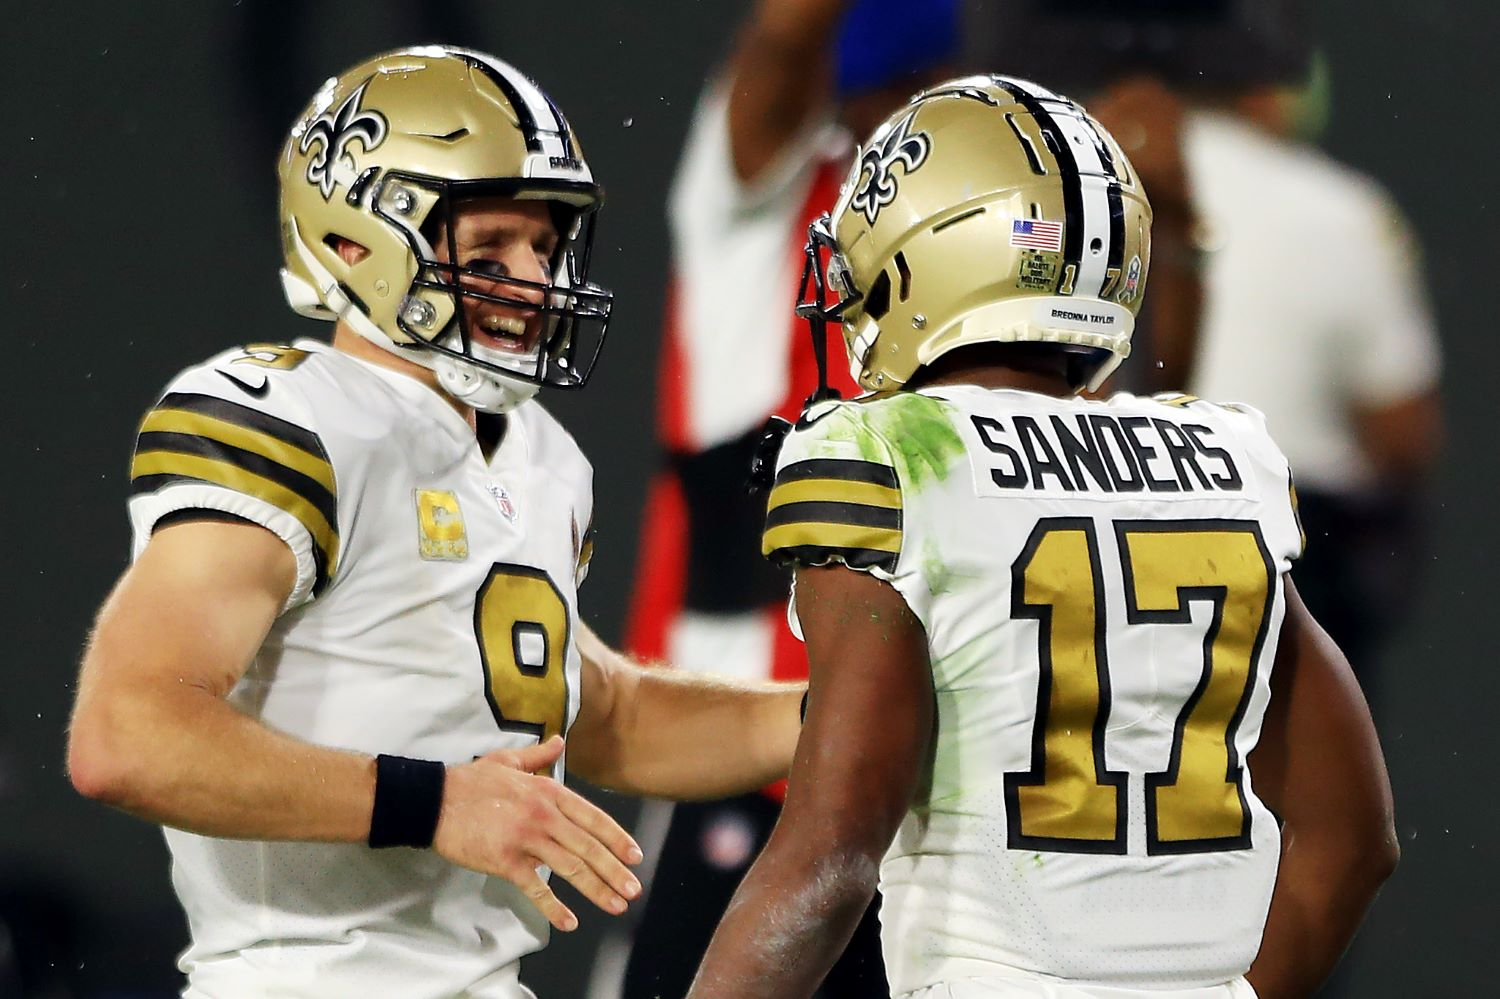 Drew Brees helped one of his New Orleans Saints teammates earn a $500,000 bonus in Sunday's 33-7 win against the Carolina Panthers.